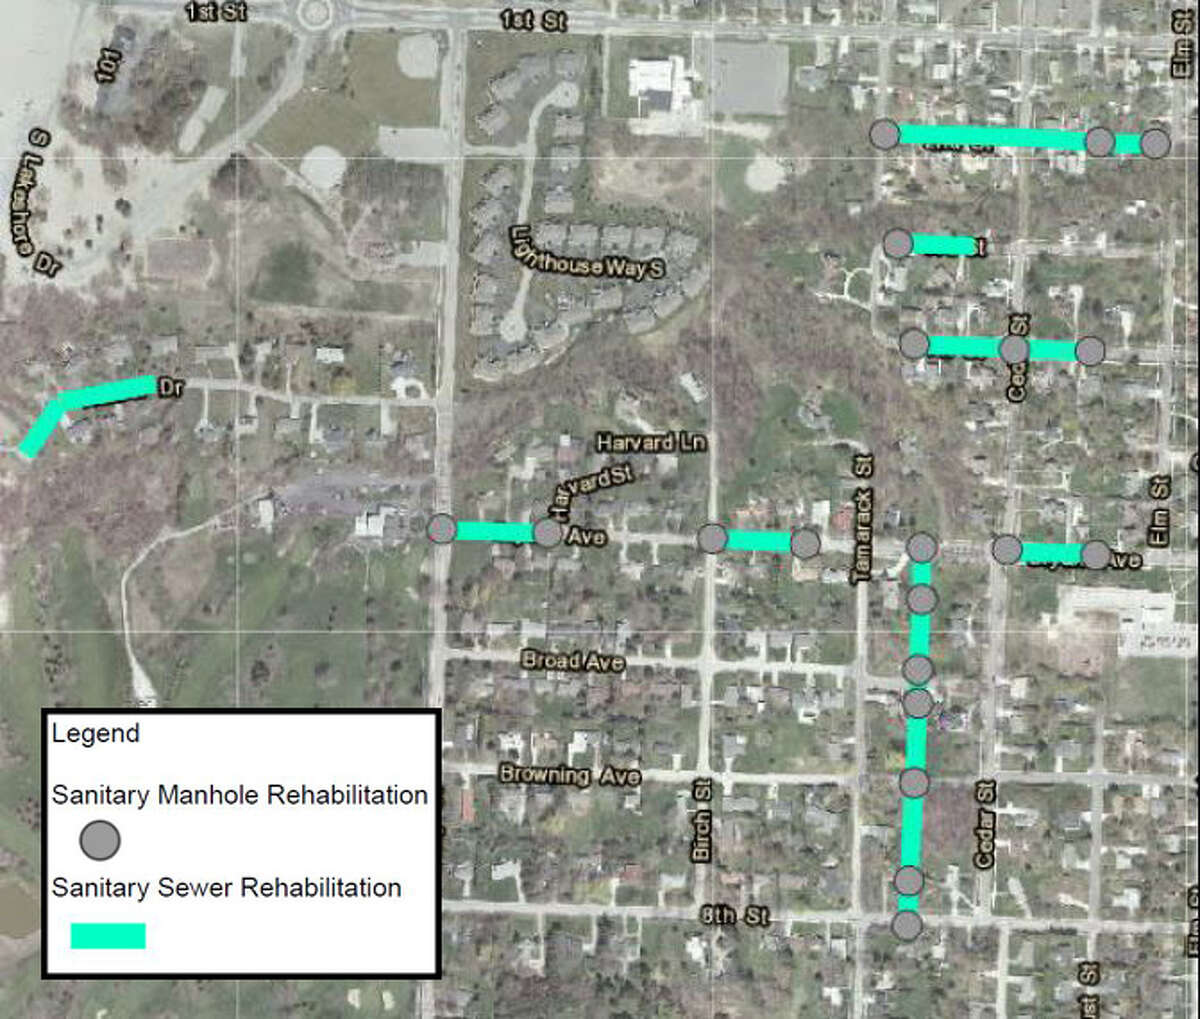 Wastewater collection rehabilitation project map for the east side of Manistee. (Courtesy Map)